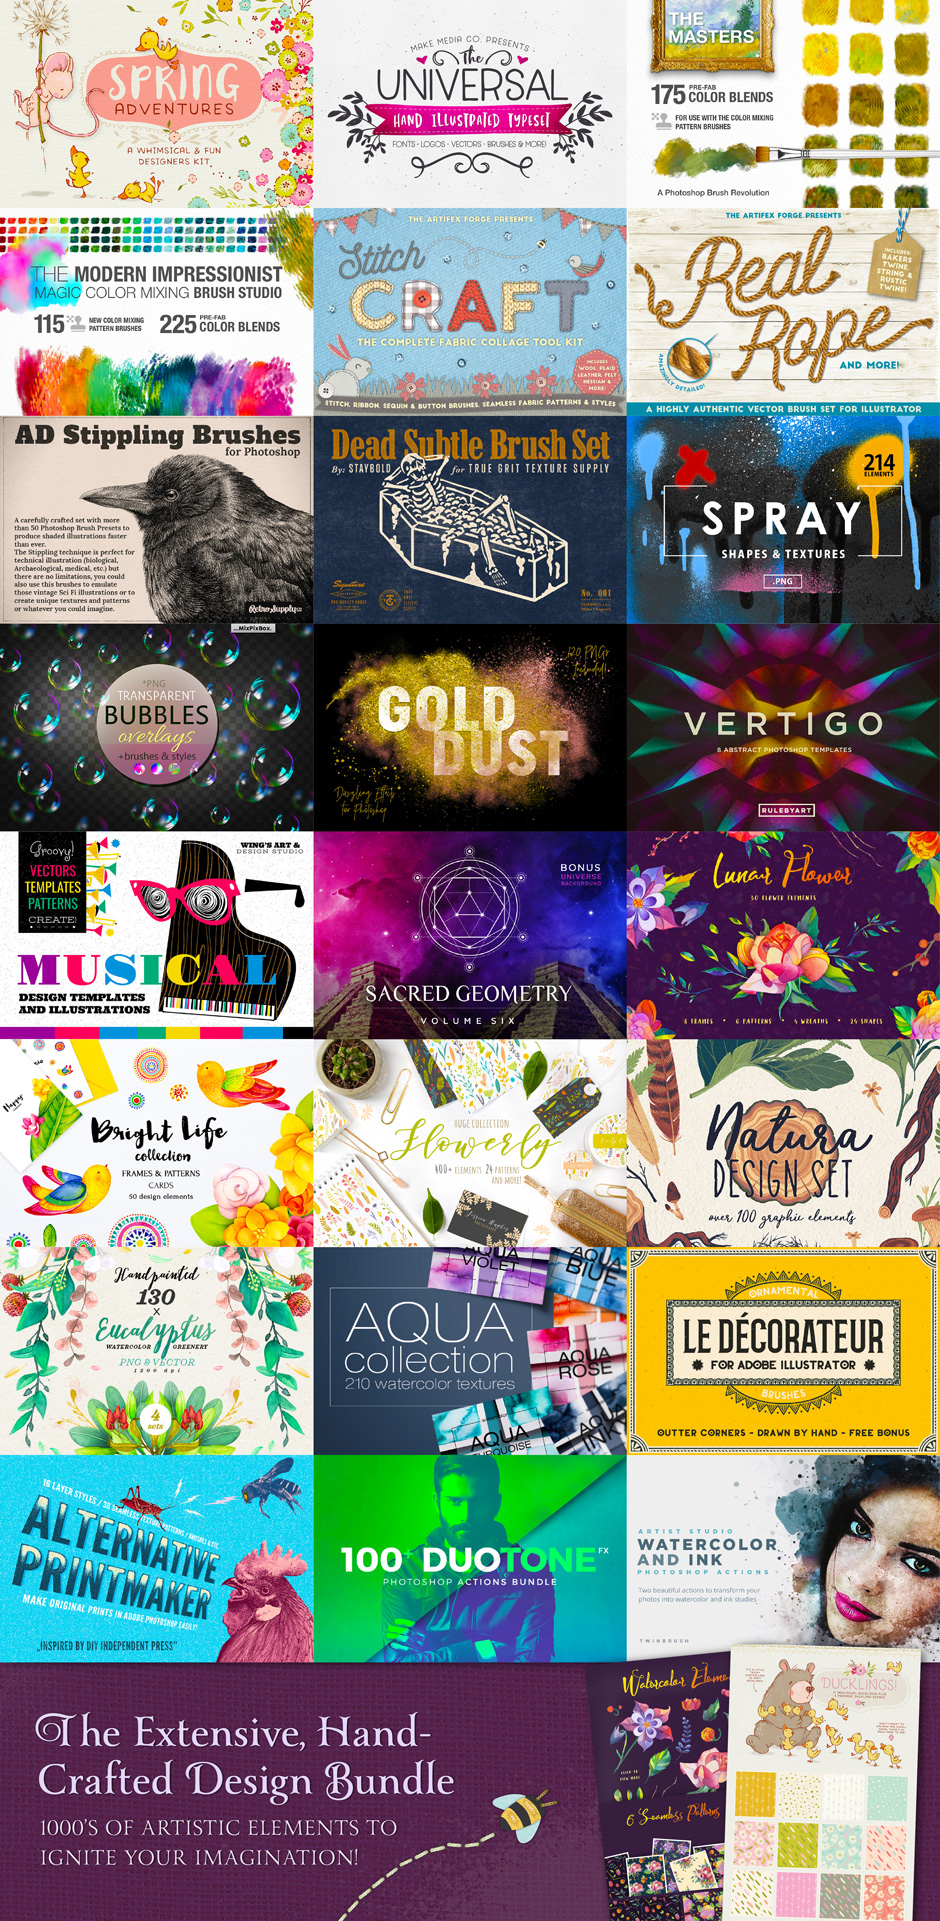 The Extensive Hand-Crafted Design Bundle